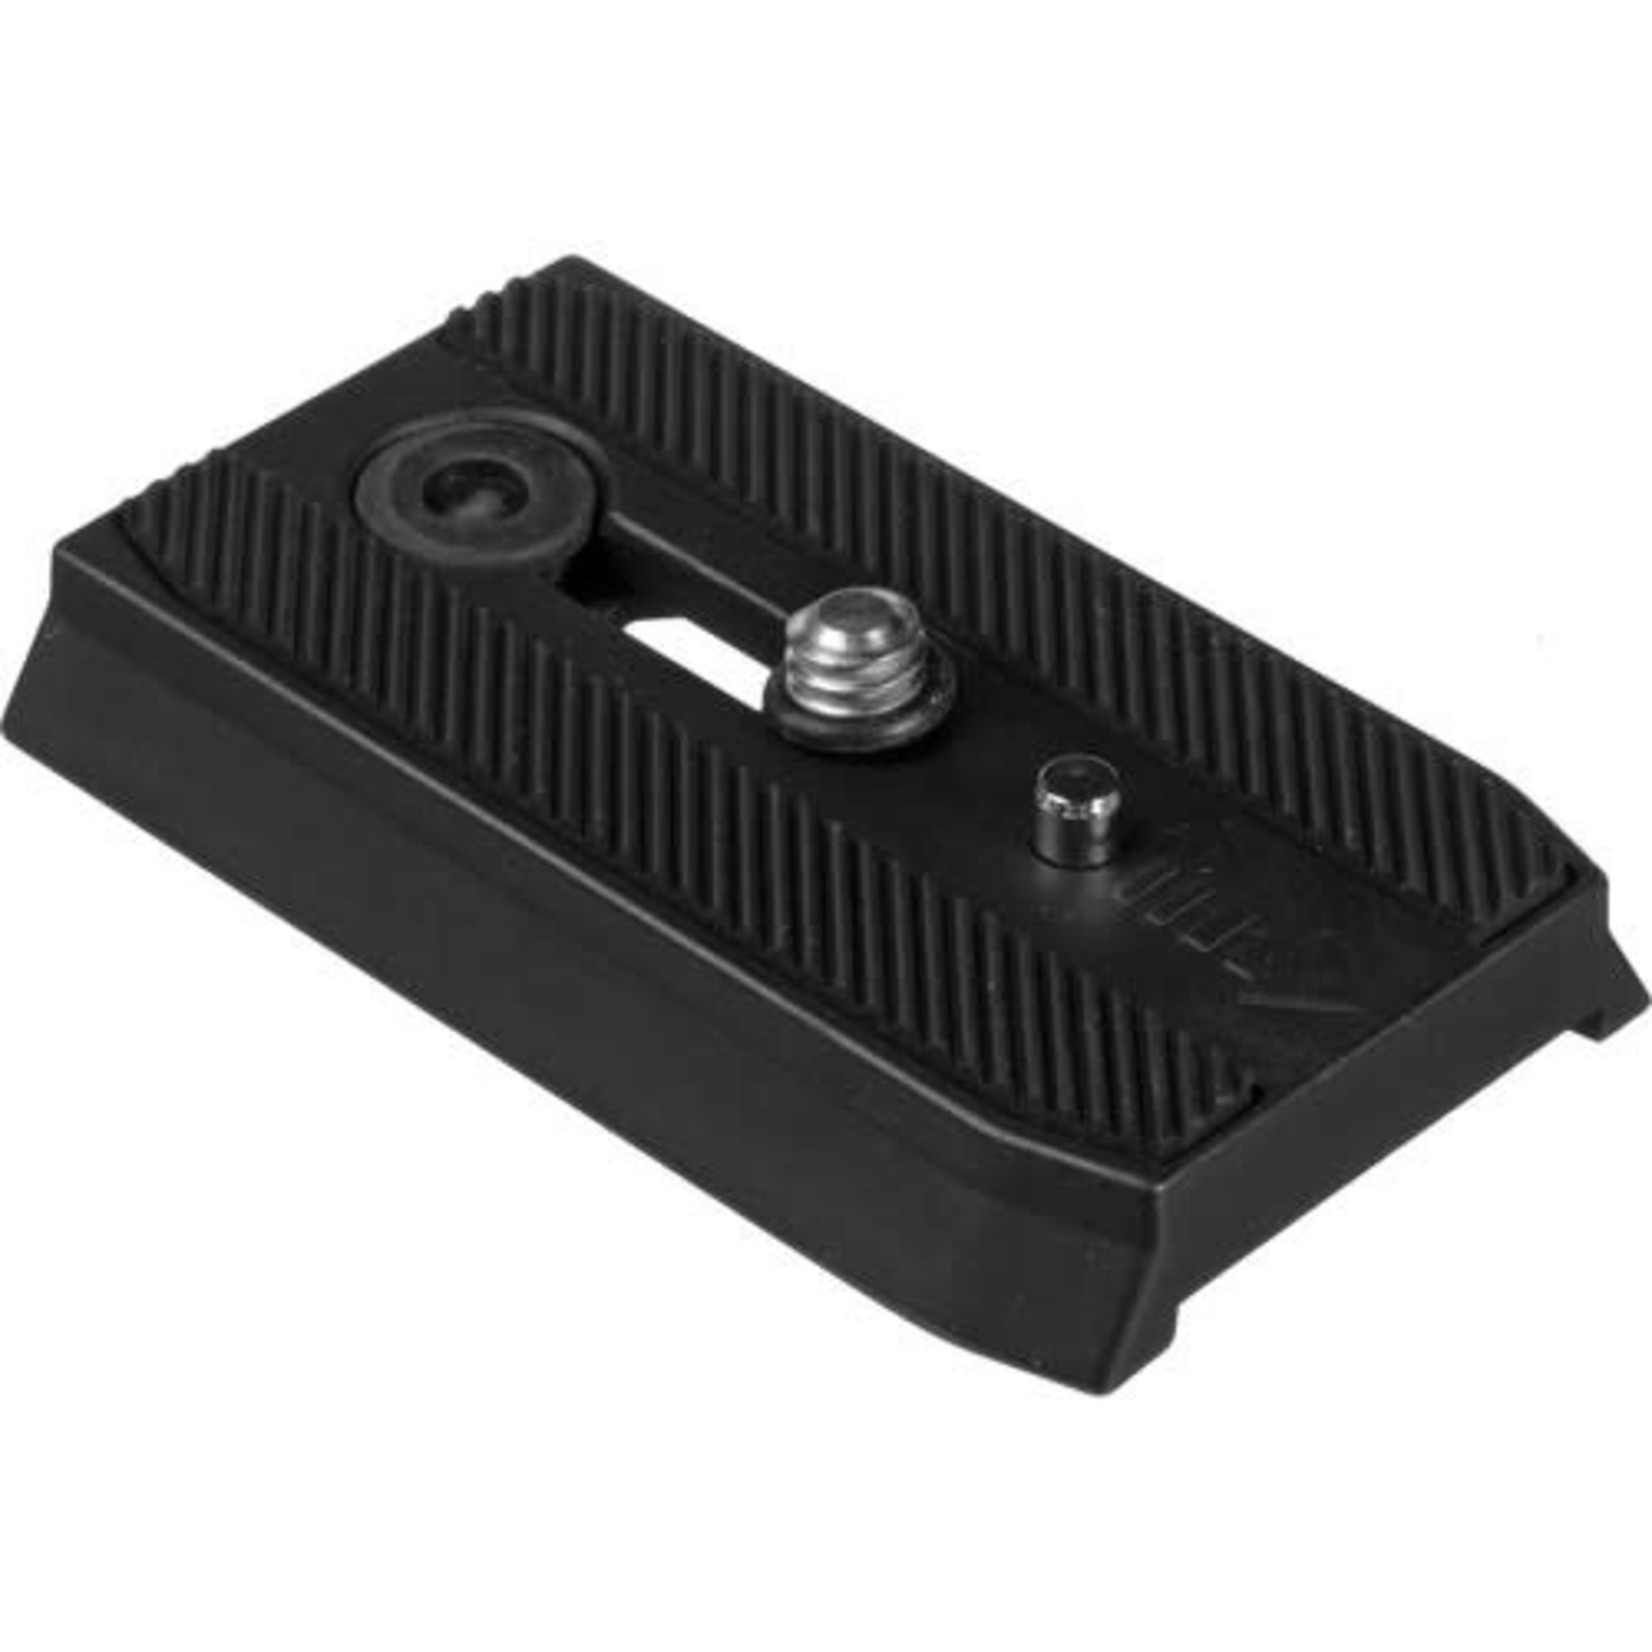 Benro Benro QR4 Video Quick Release Plate for S2 Video Head